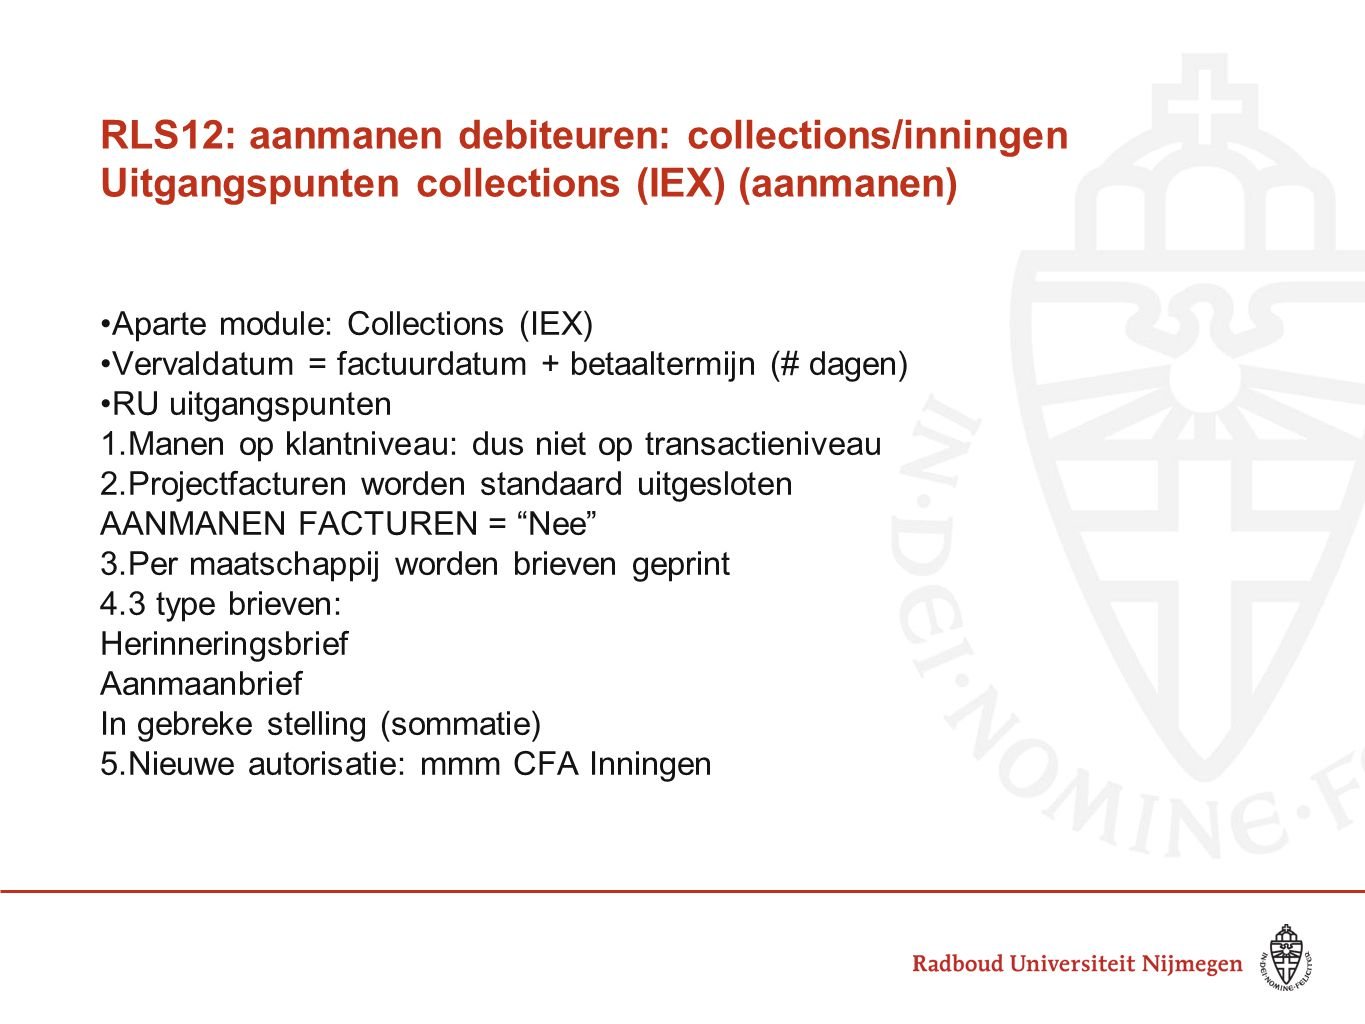 RLS12: aanmanen debiteuren: collections/inningen Uitgangspunten collections (IEX) (aanmanen)